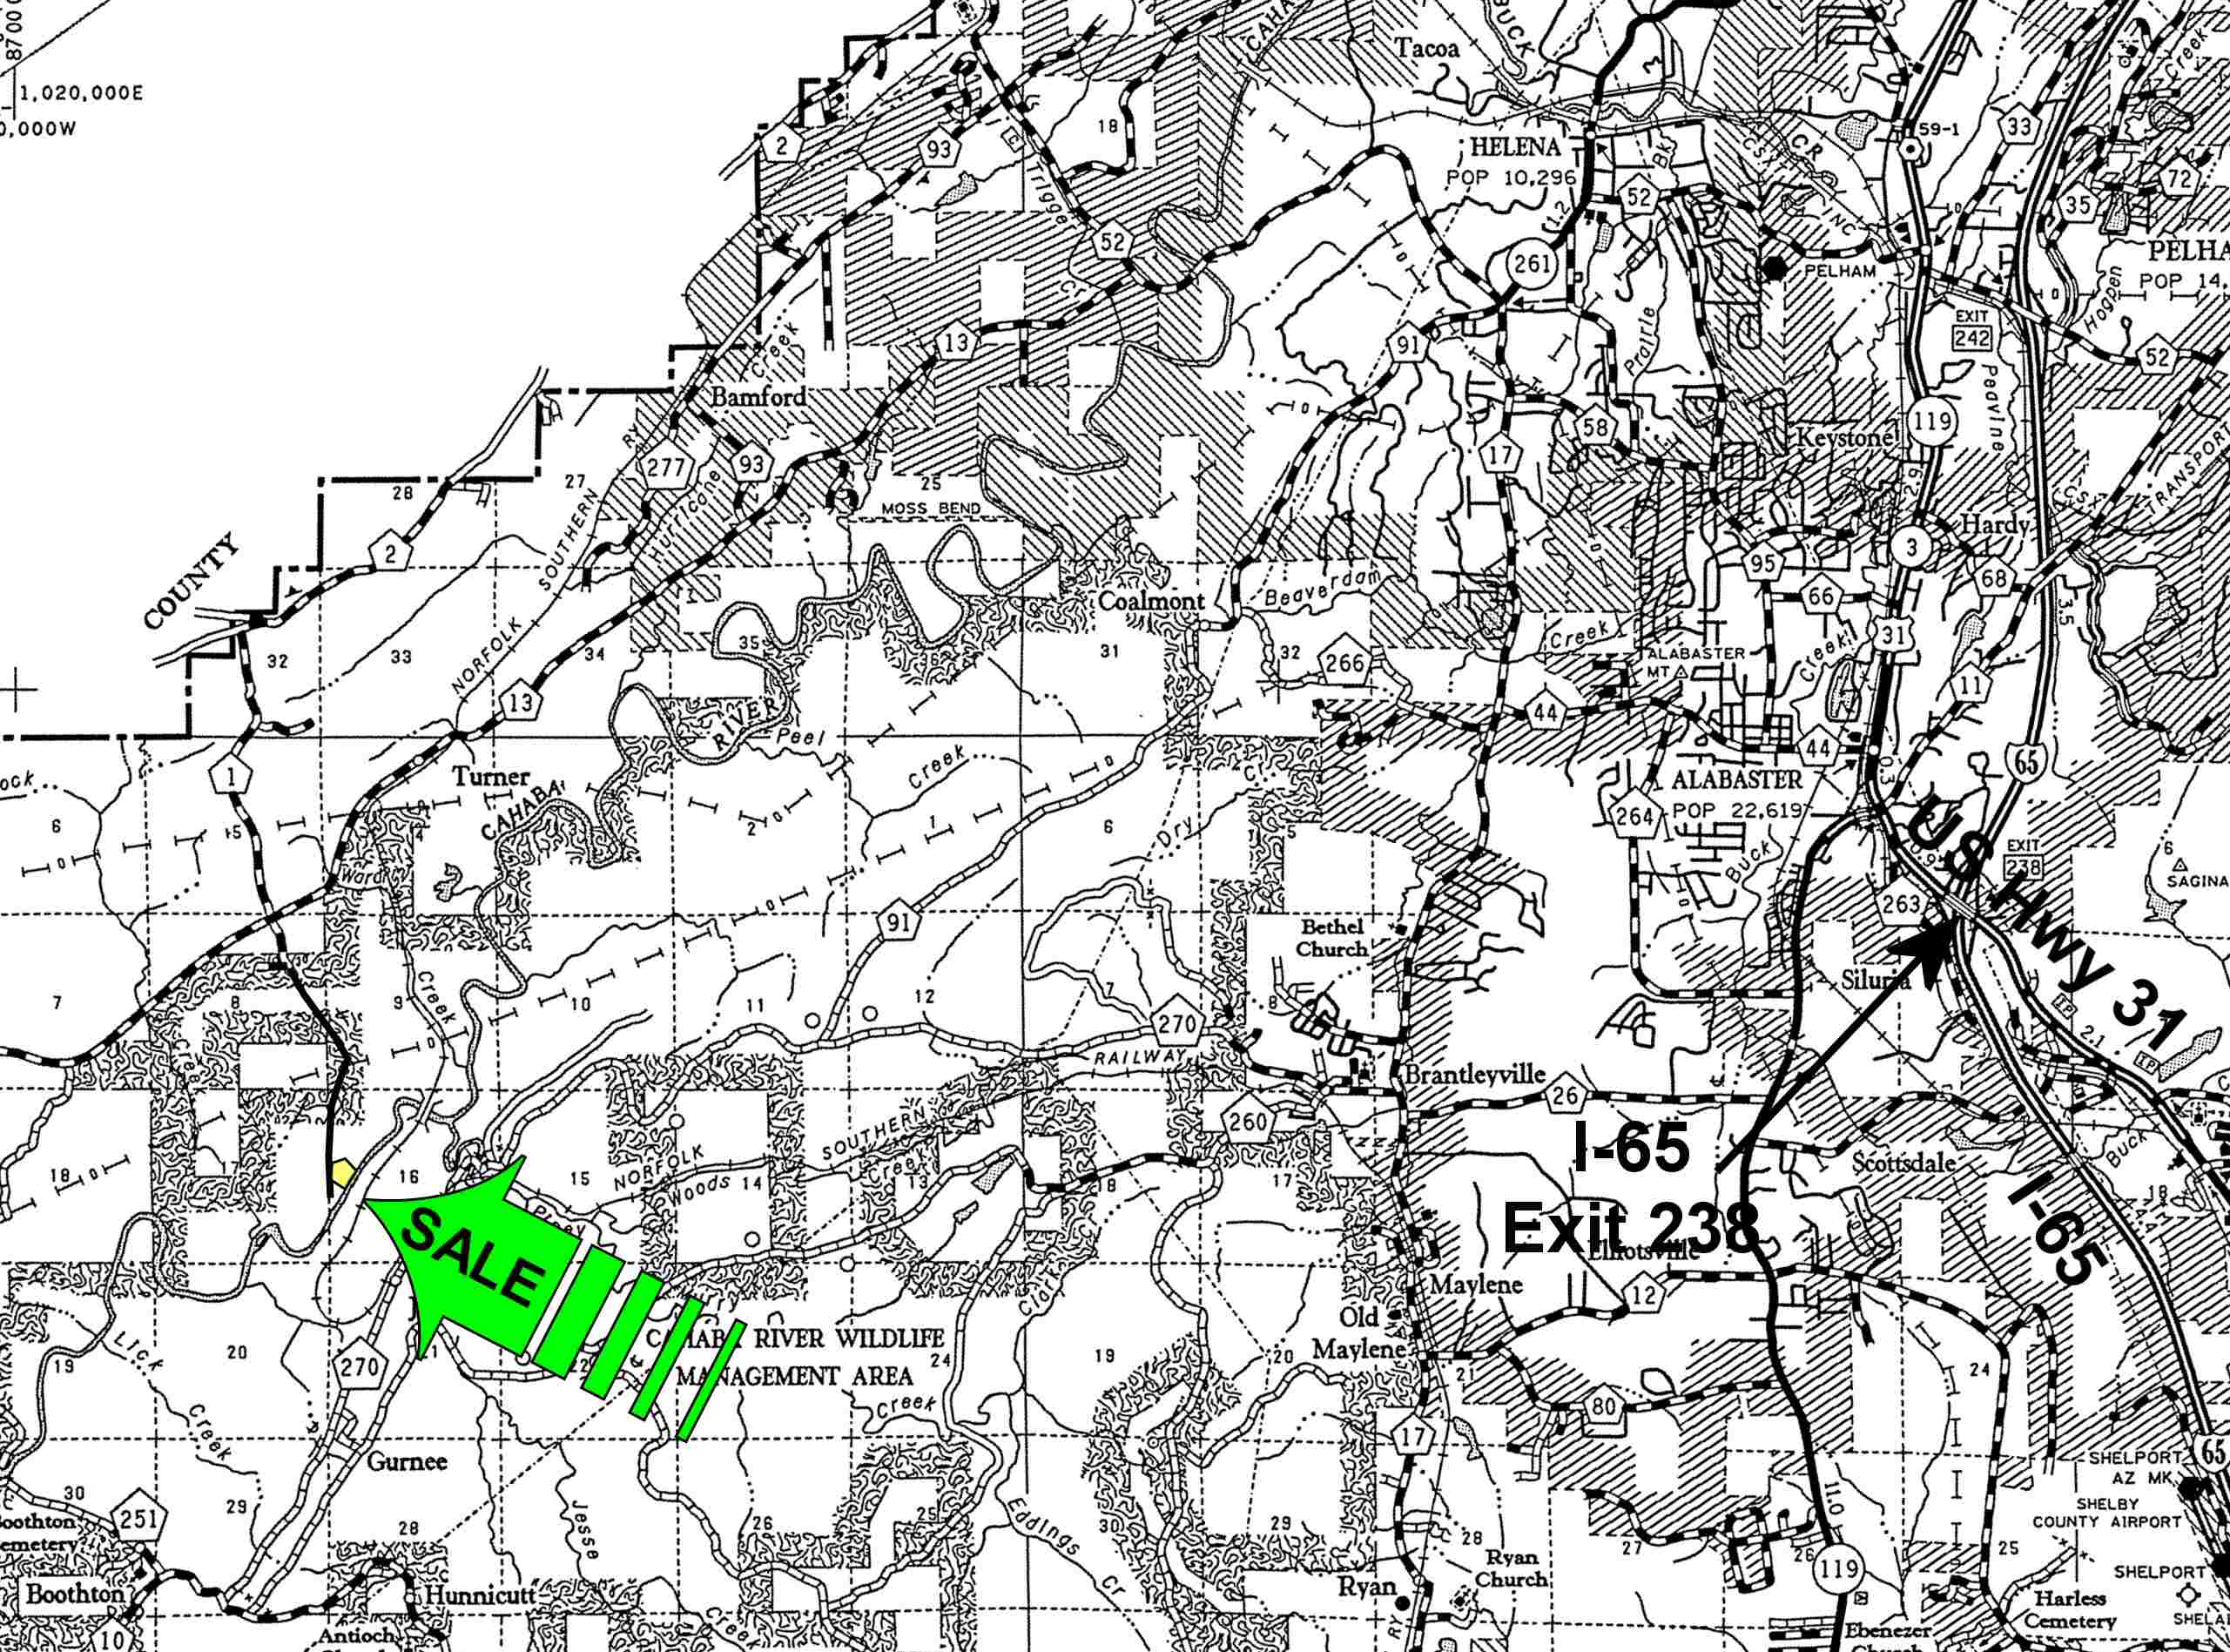 20 Acres In Shelby County Alabama